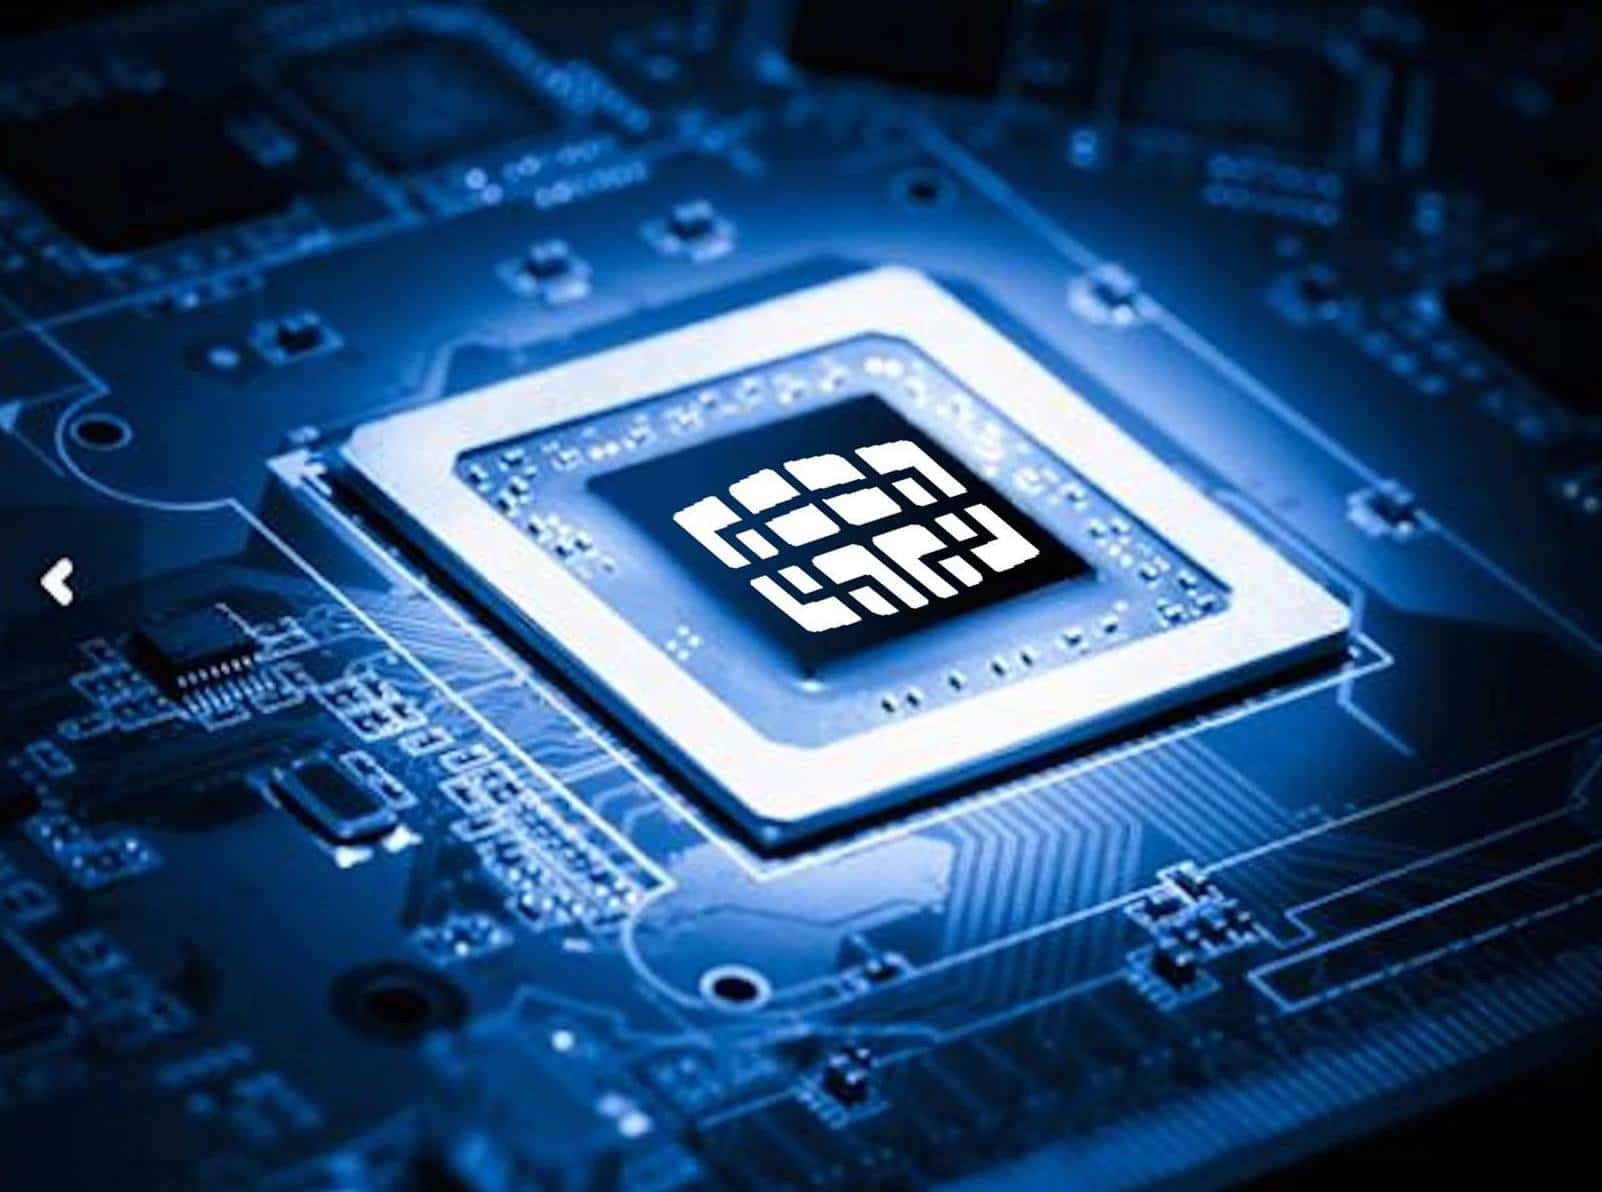 Next Orbit Invests In Gujarat S Semiconductor Project